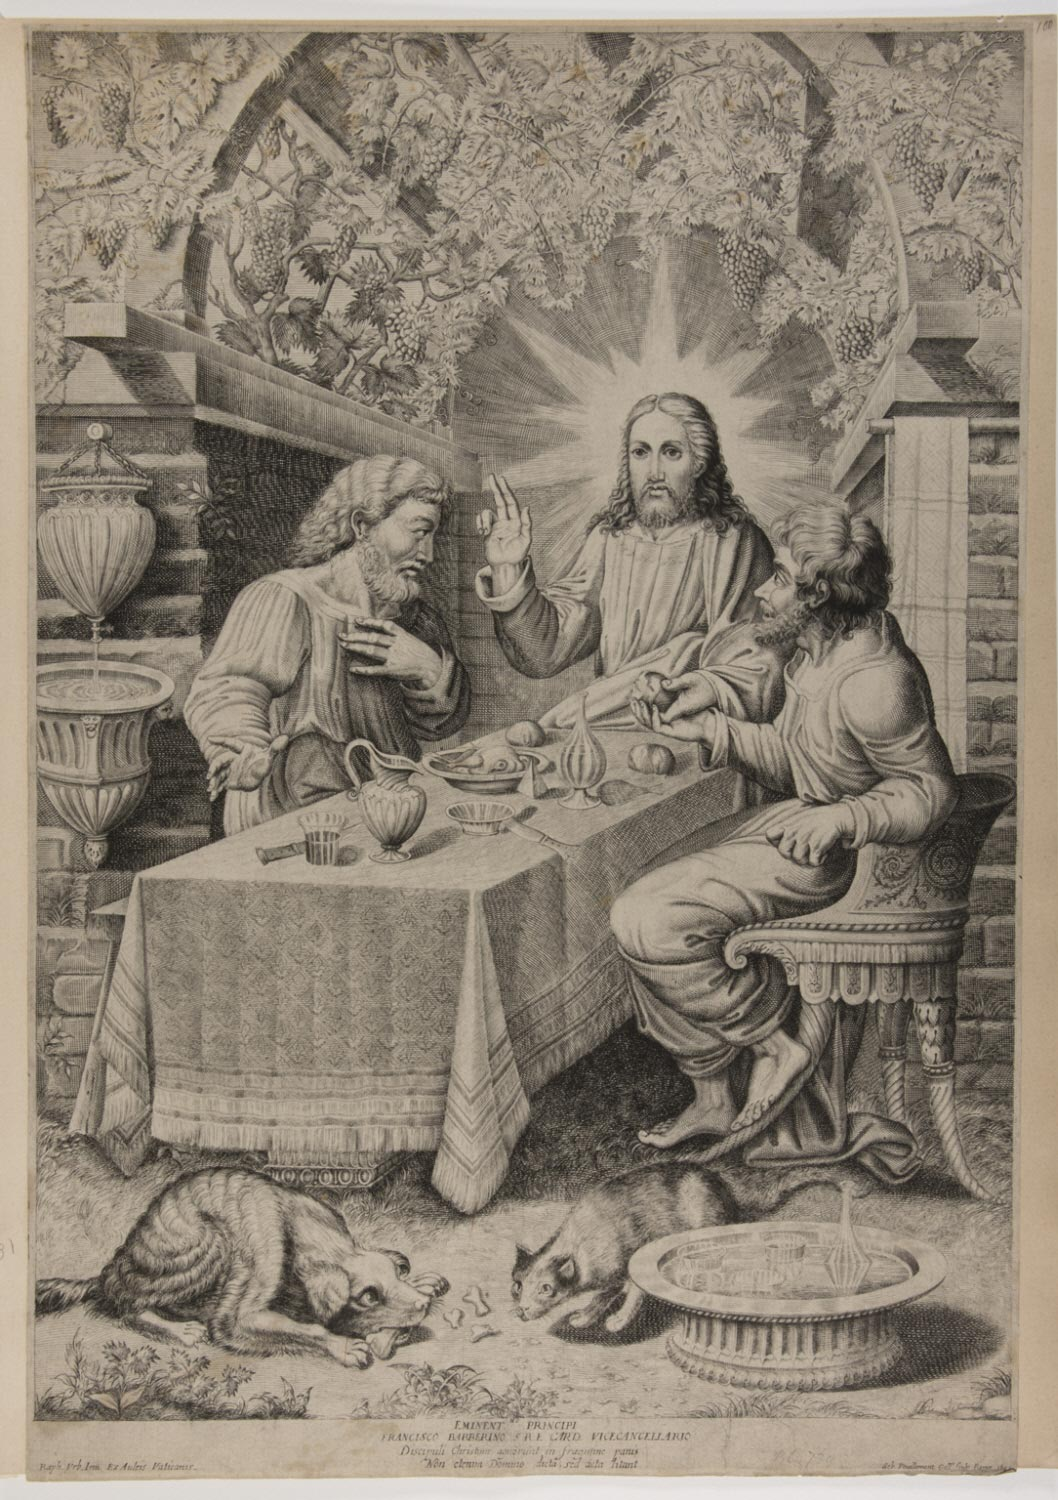 The Supper at Emmaus  , 1642, by Sébastien Vouillemont, Italy. from the  Philadelphia Museum of Art